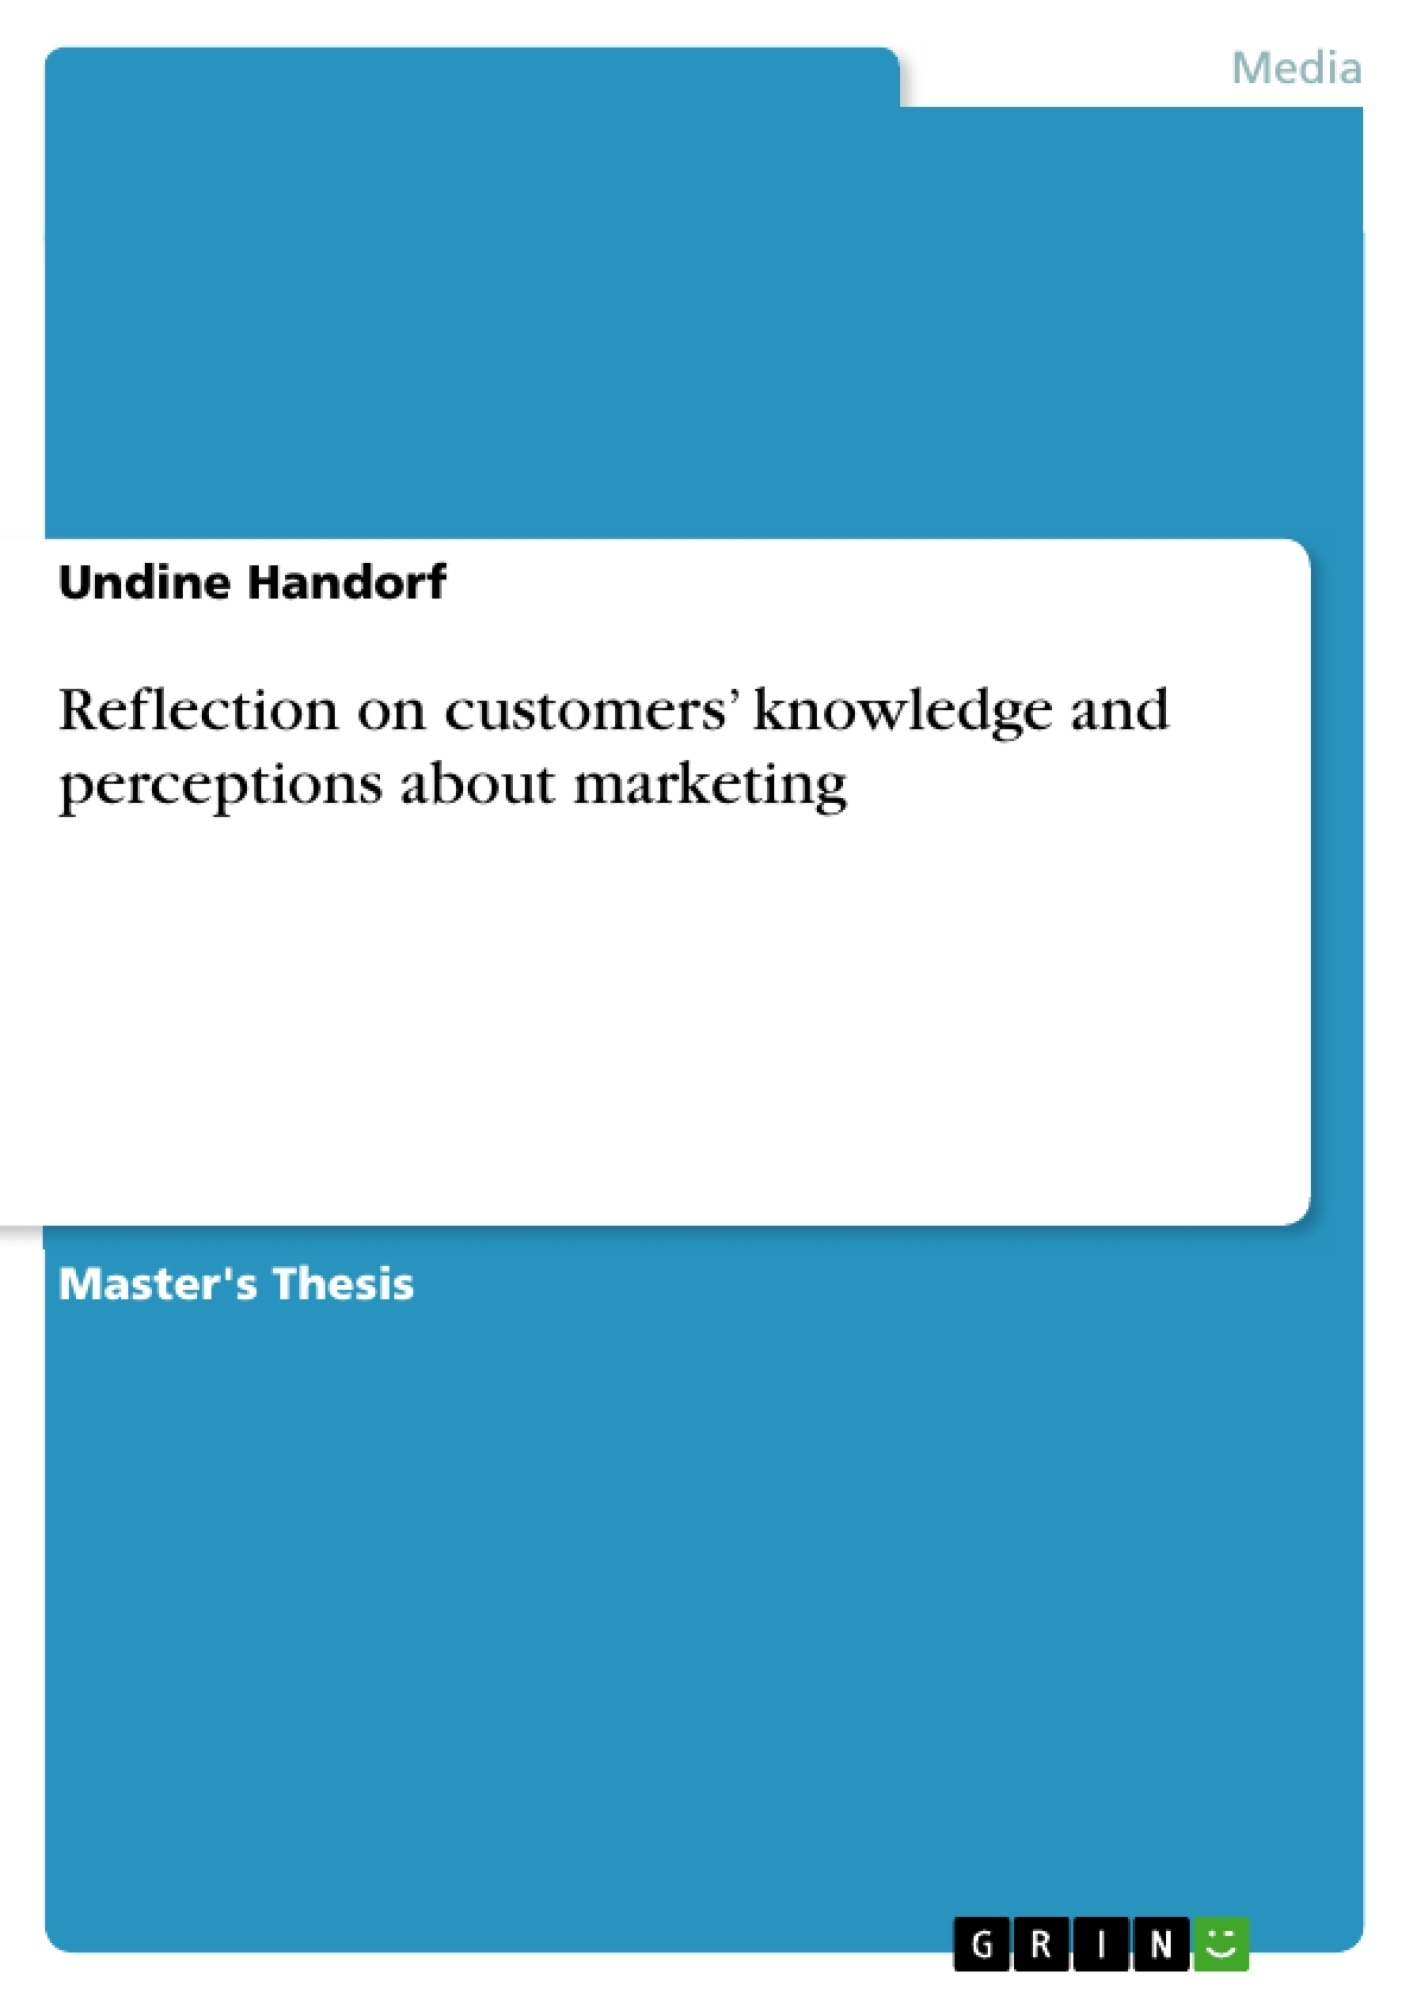 Title: Reflection on customers' knowledge and perceptions about marketing